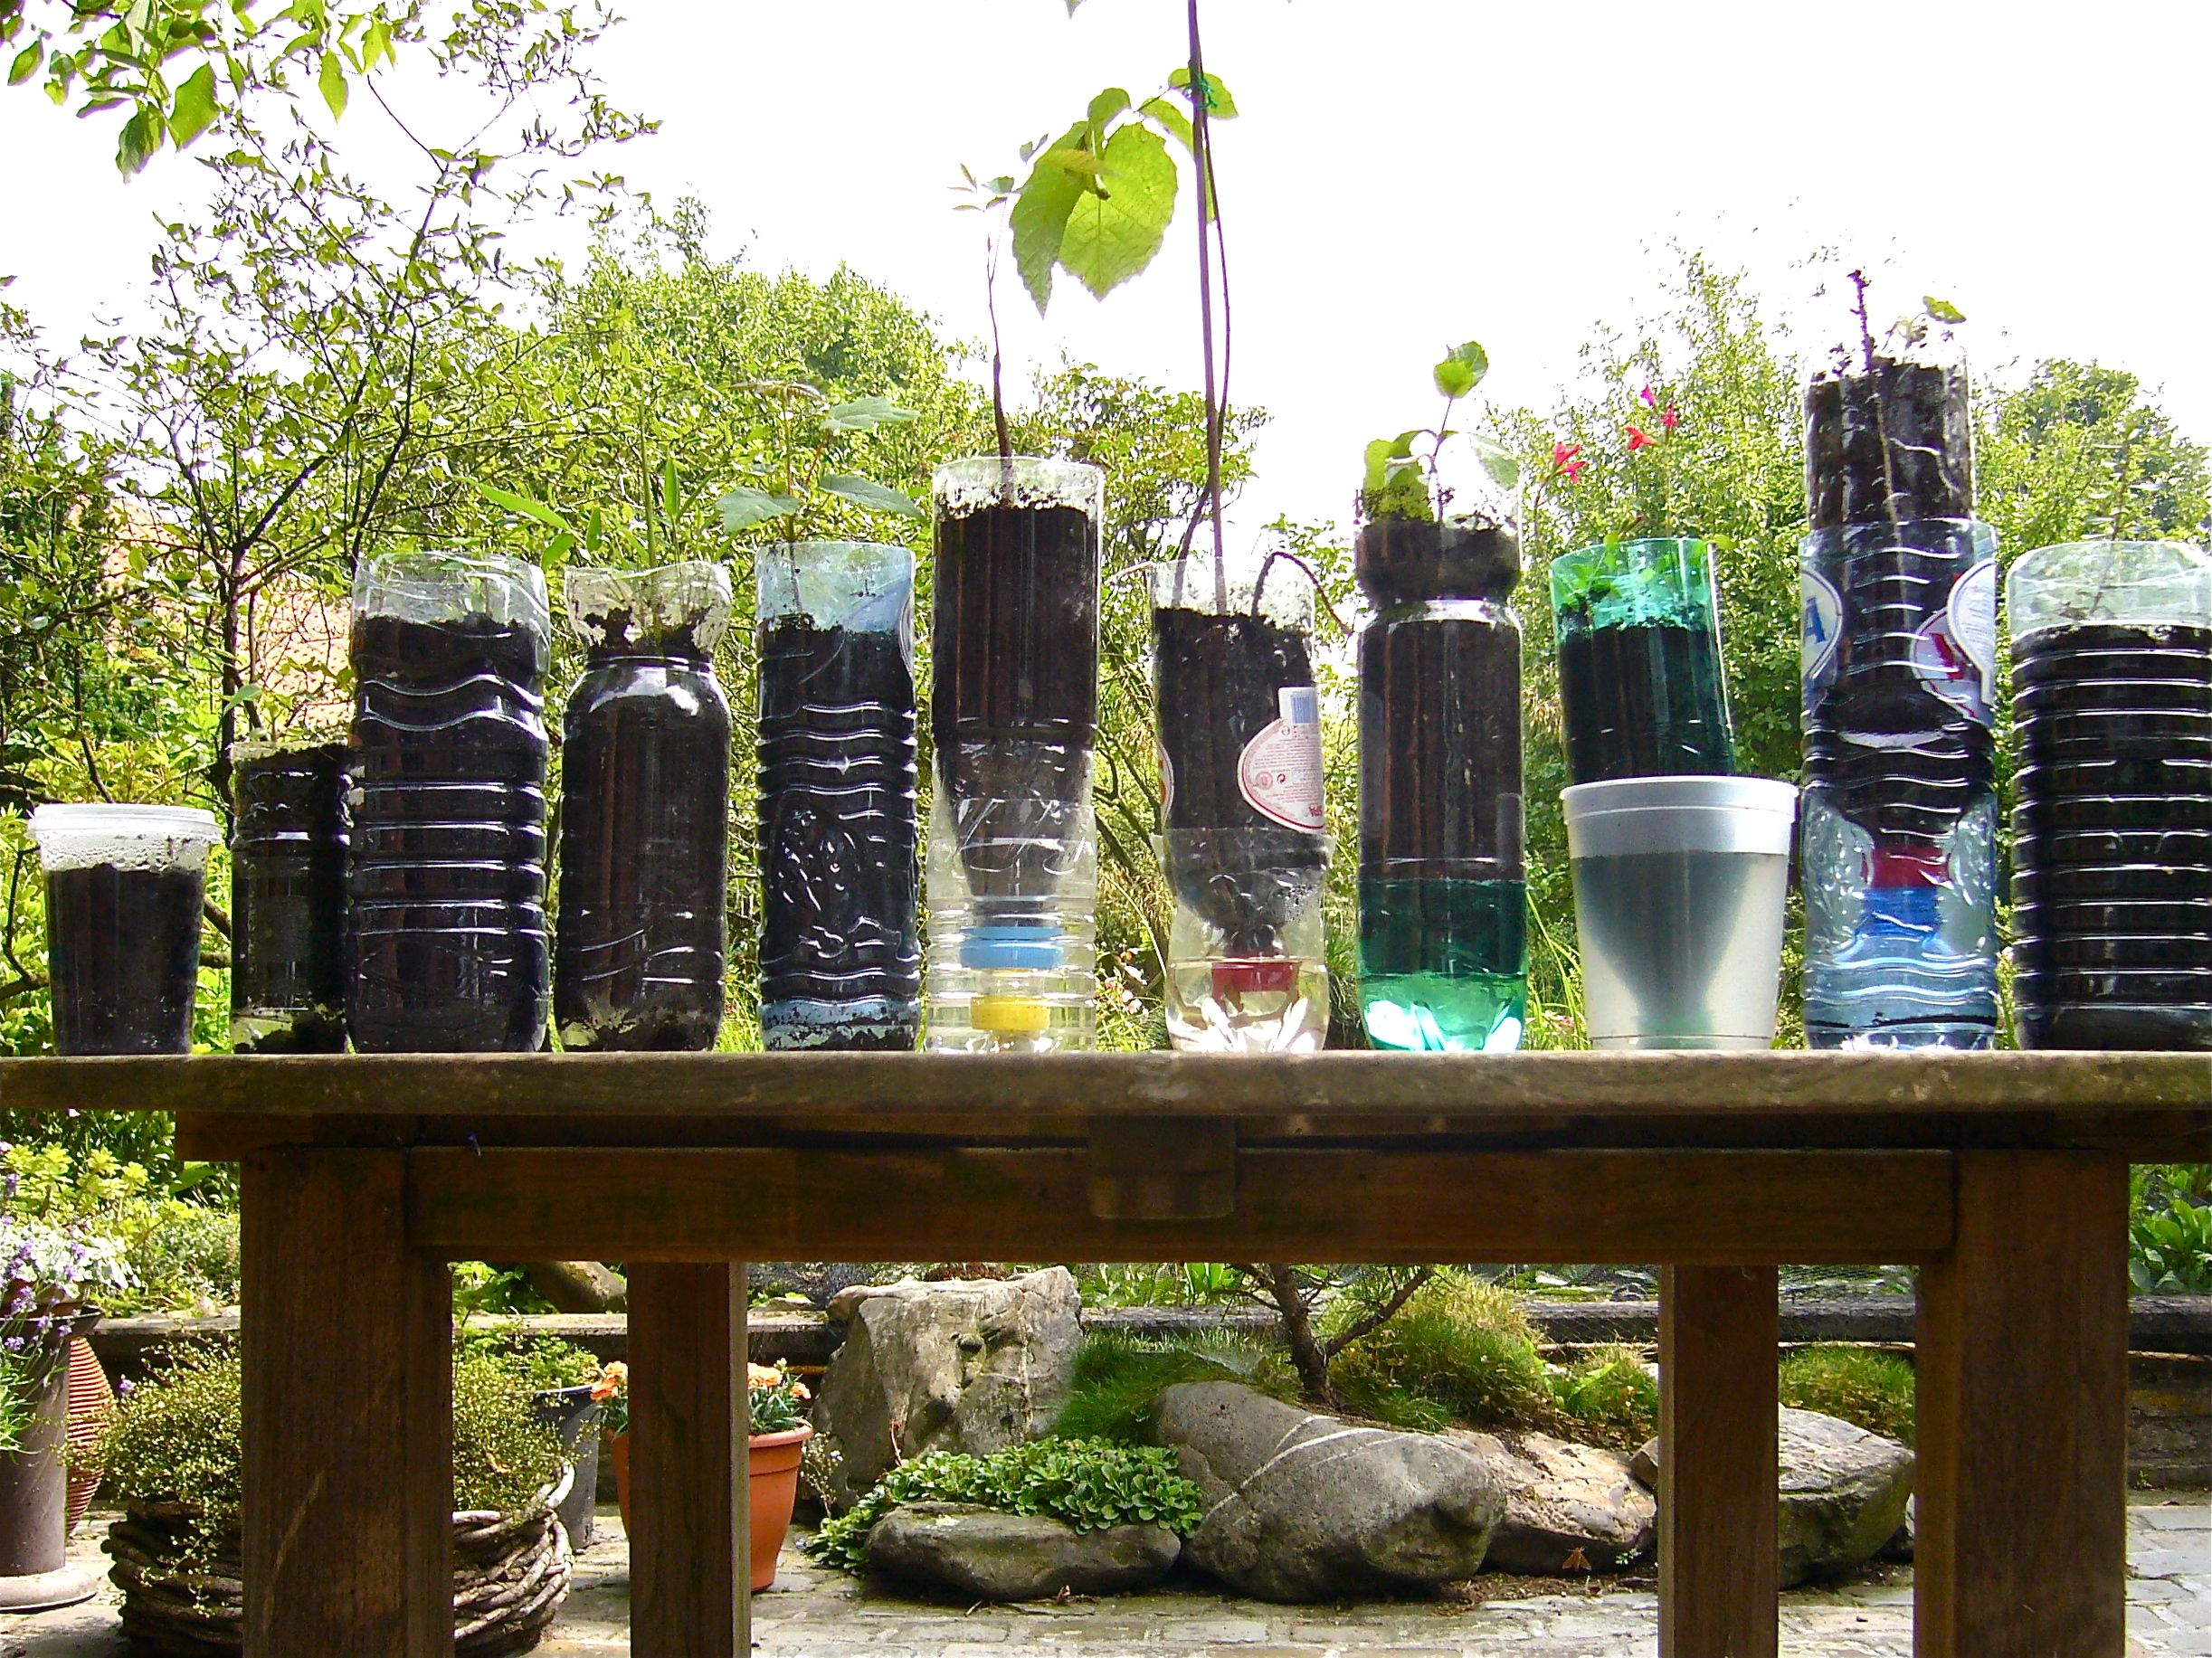 Vegetable container garden ideas - Growing Vegetables And Tree Saplings In Recycled Bottles Pots And Trays Willem Van Cotthem Vegetable Gardeningcontainer